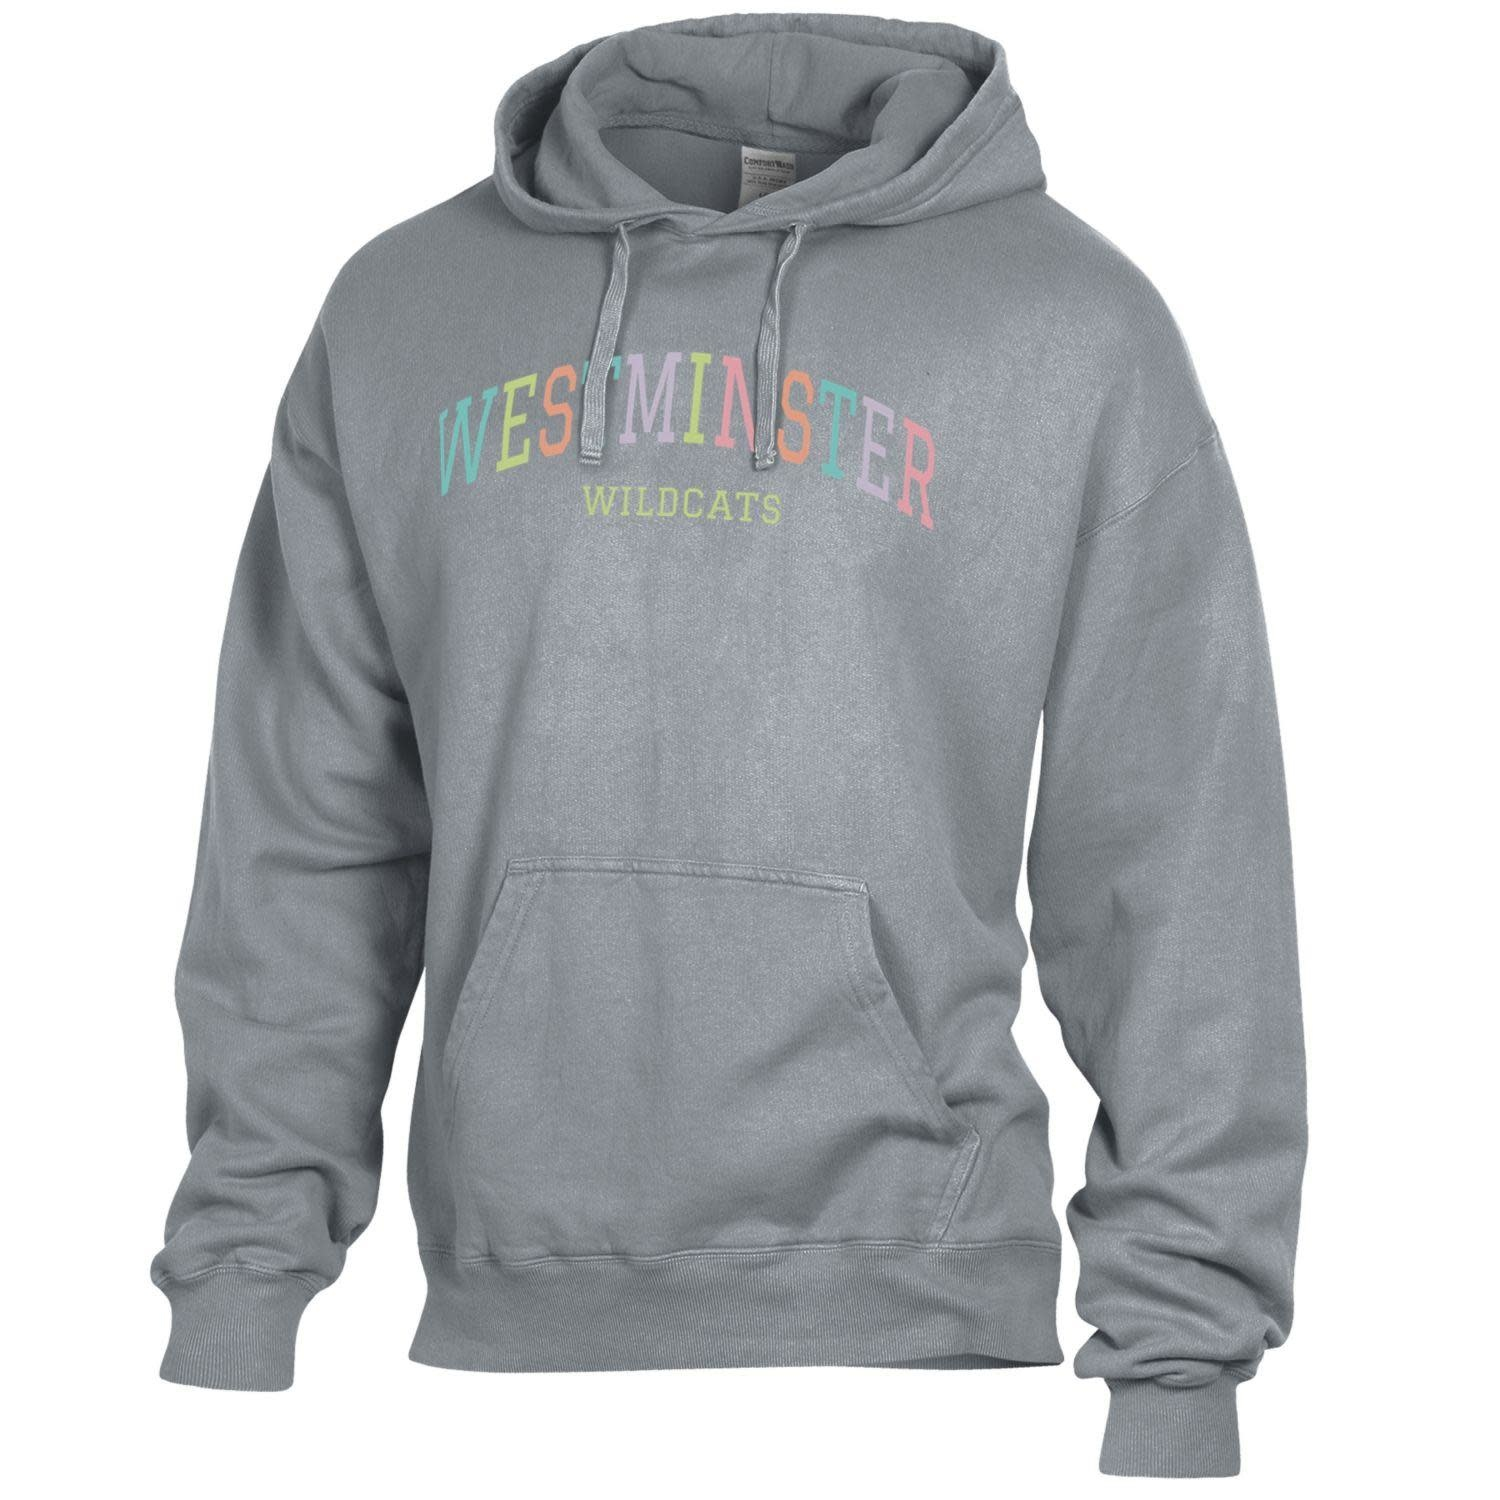 Under Armour Sweatshirt: Comfort Wash Hanes Concrete - Pastel Westminster